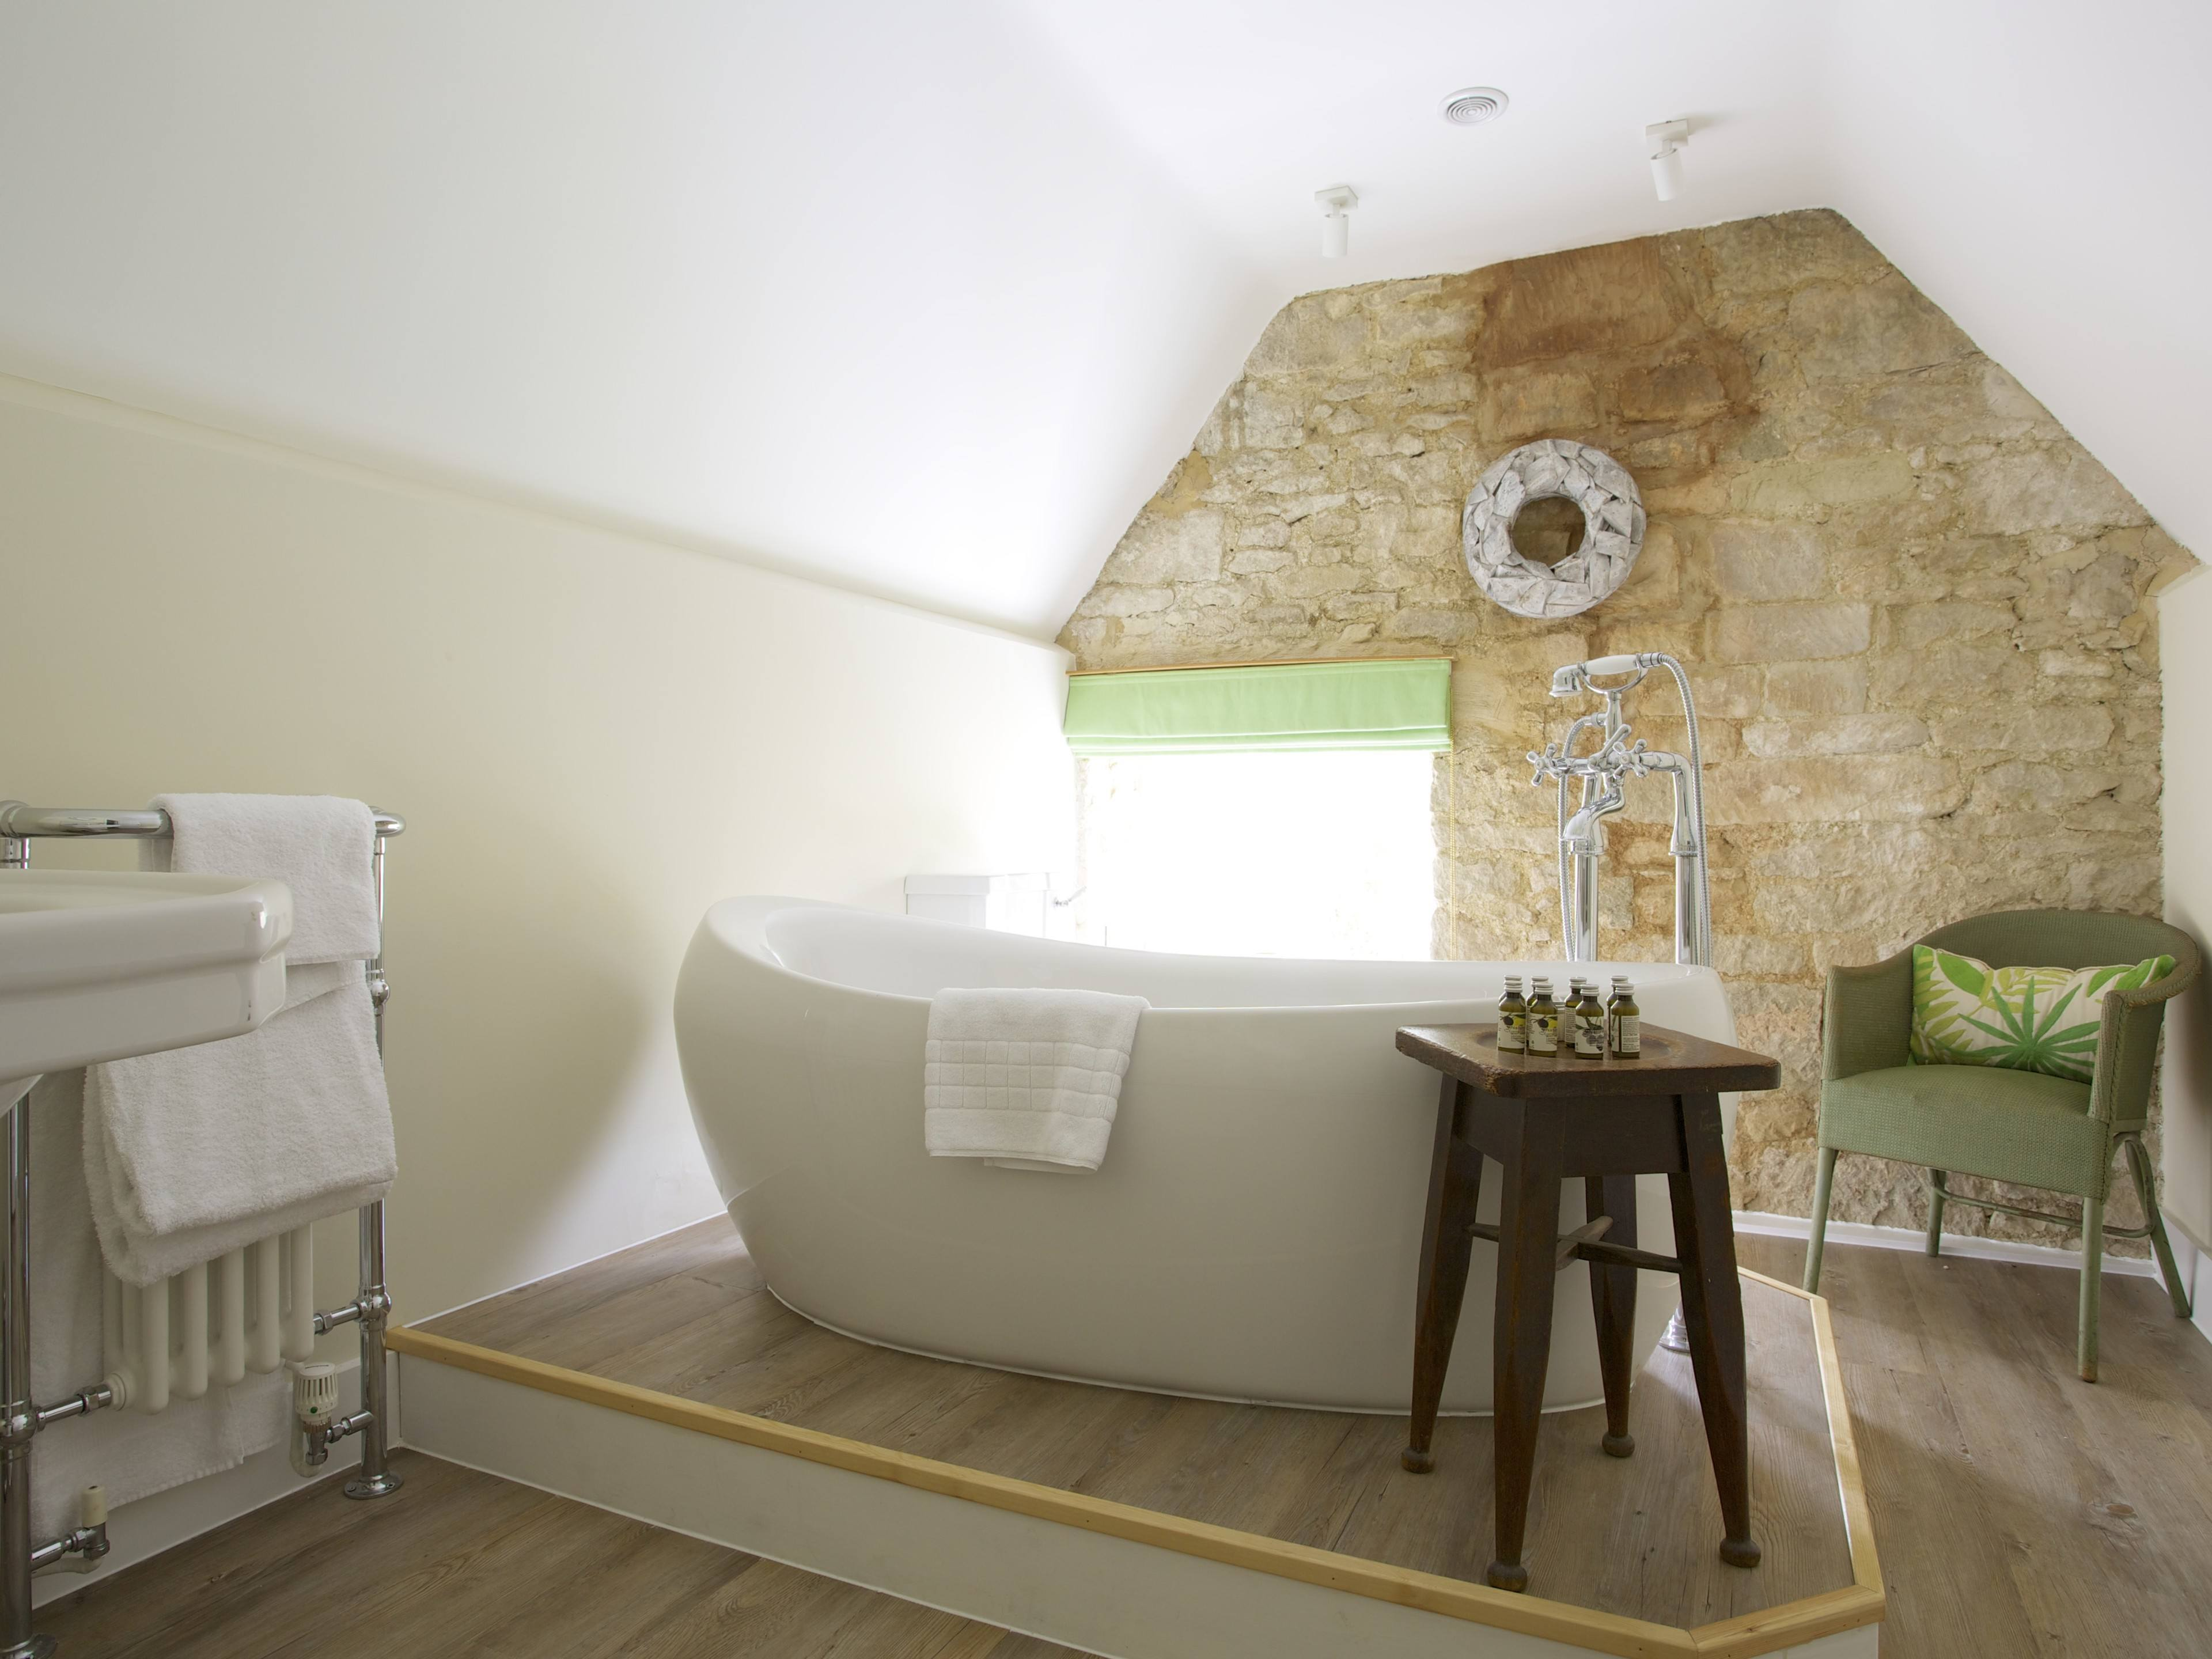 The Royal Oak Swallowcliffe Ashcombe Kingsize bed and ensuite bathroom in the attic